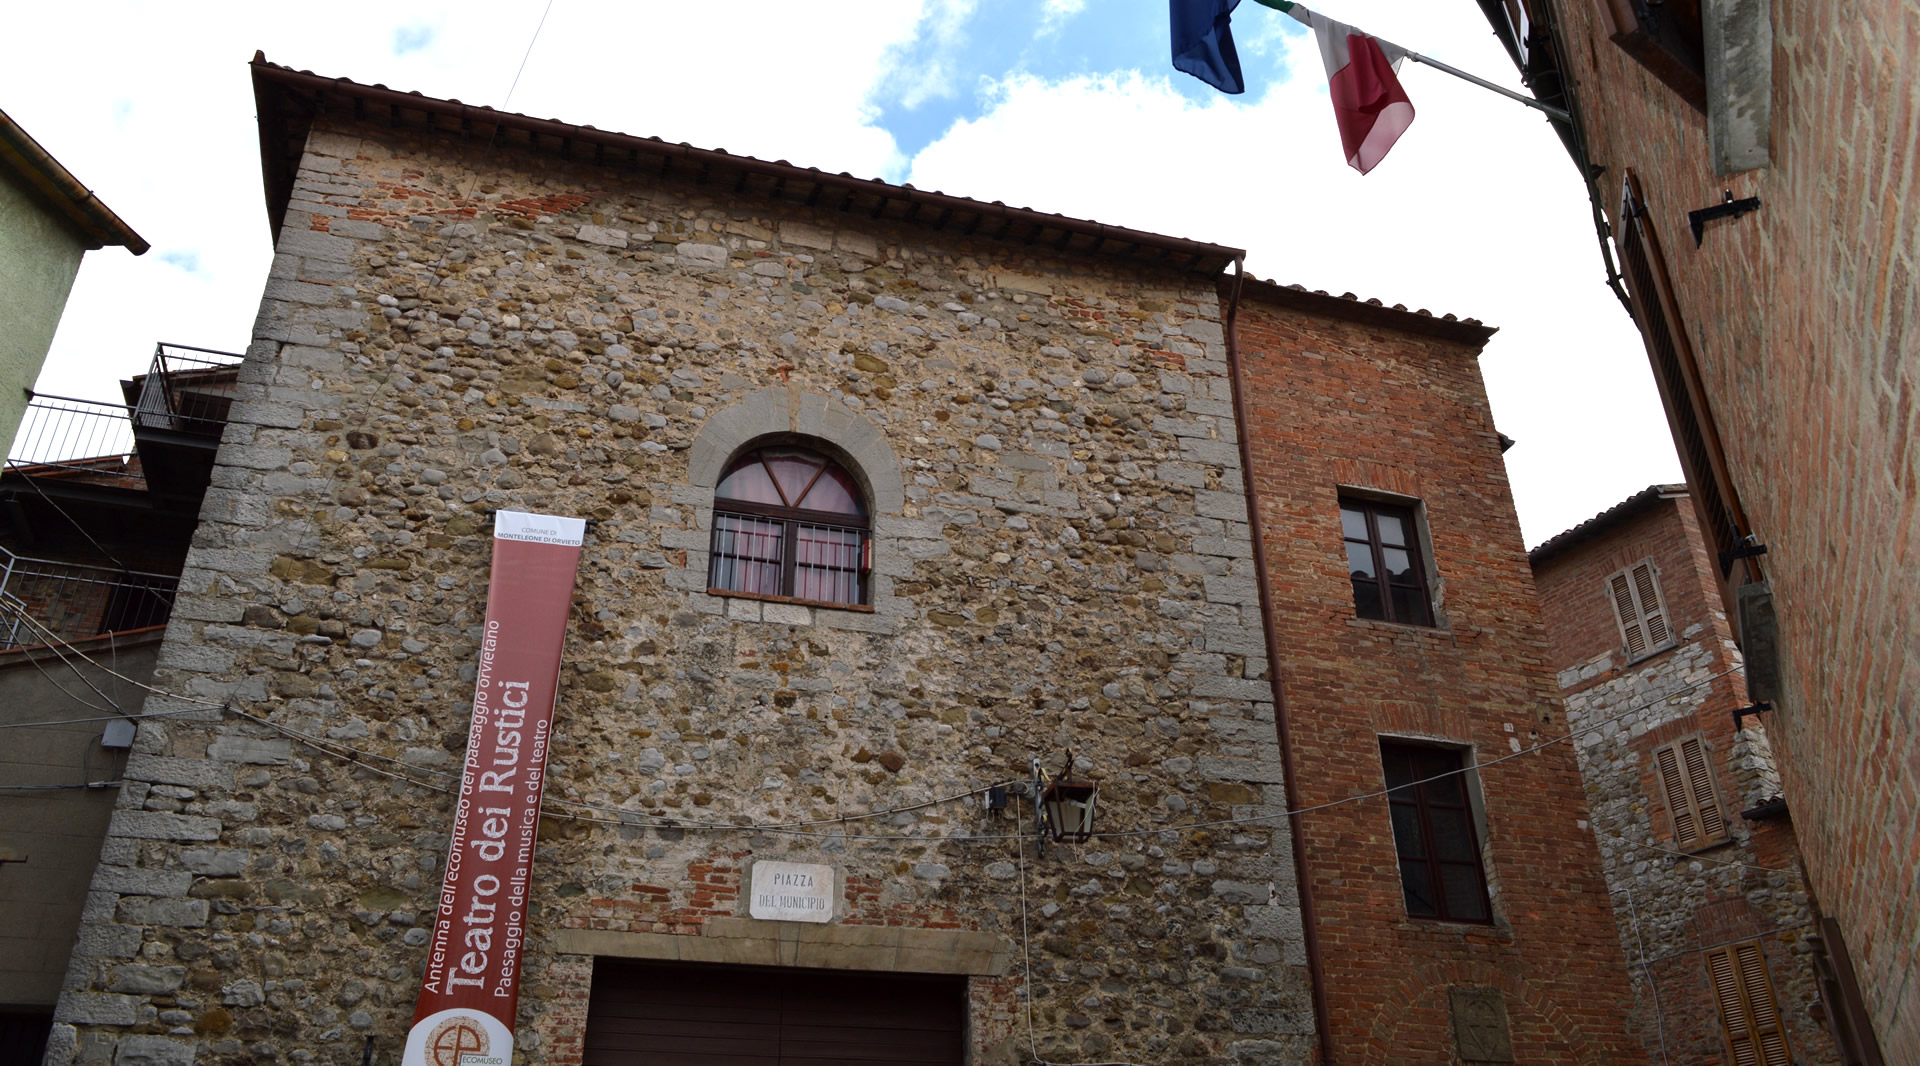 The Theatre of the Rustici - Monteleone di Orvieto